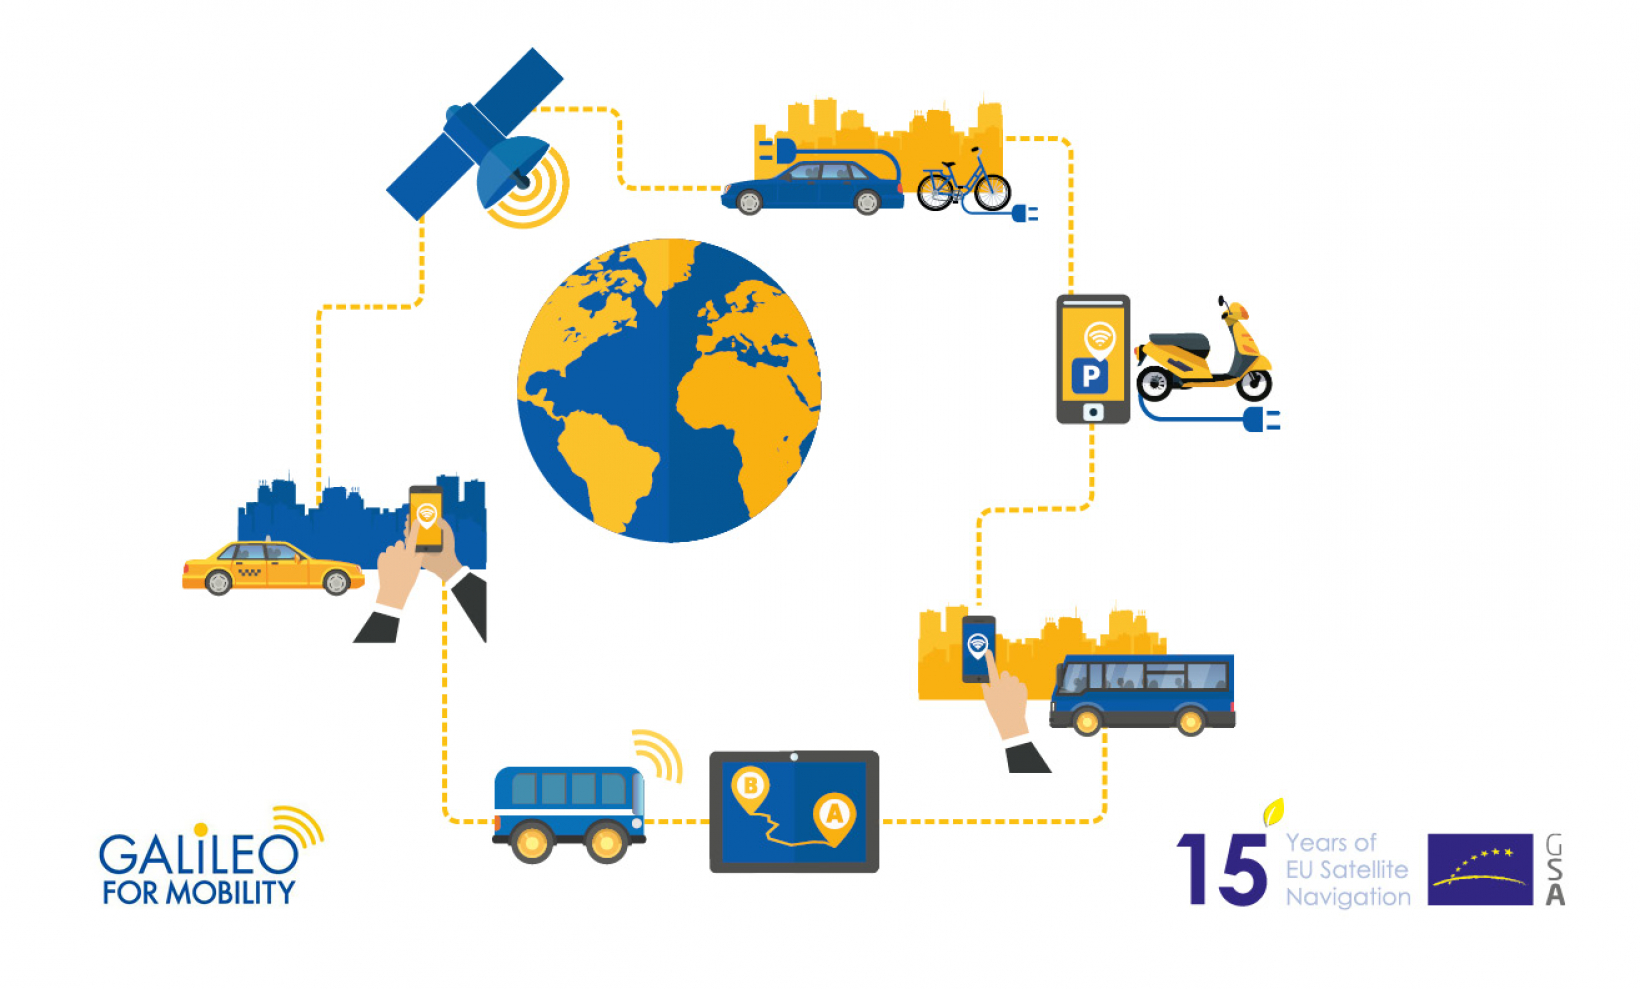 Galileo and EGNOS are supporting the smart mobility solutions of the future